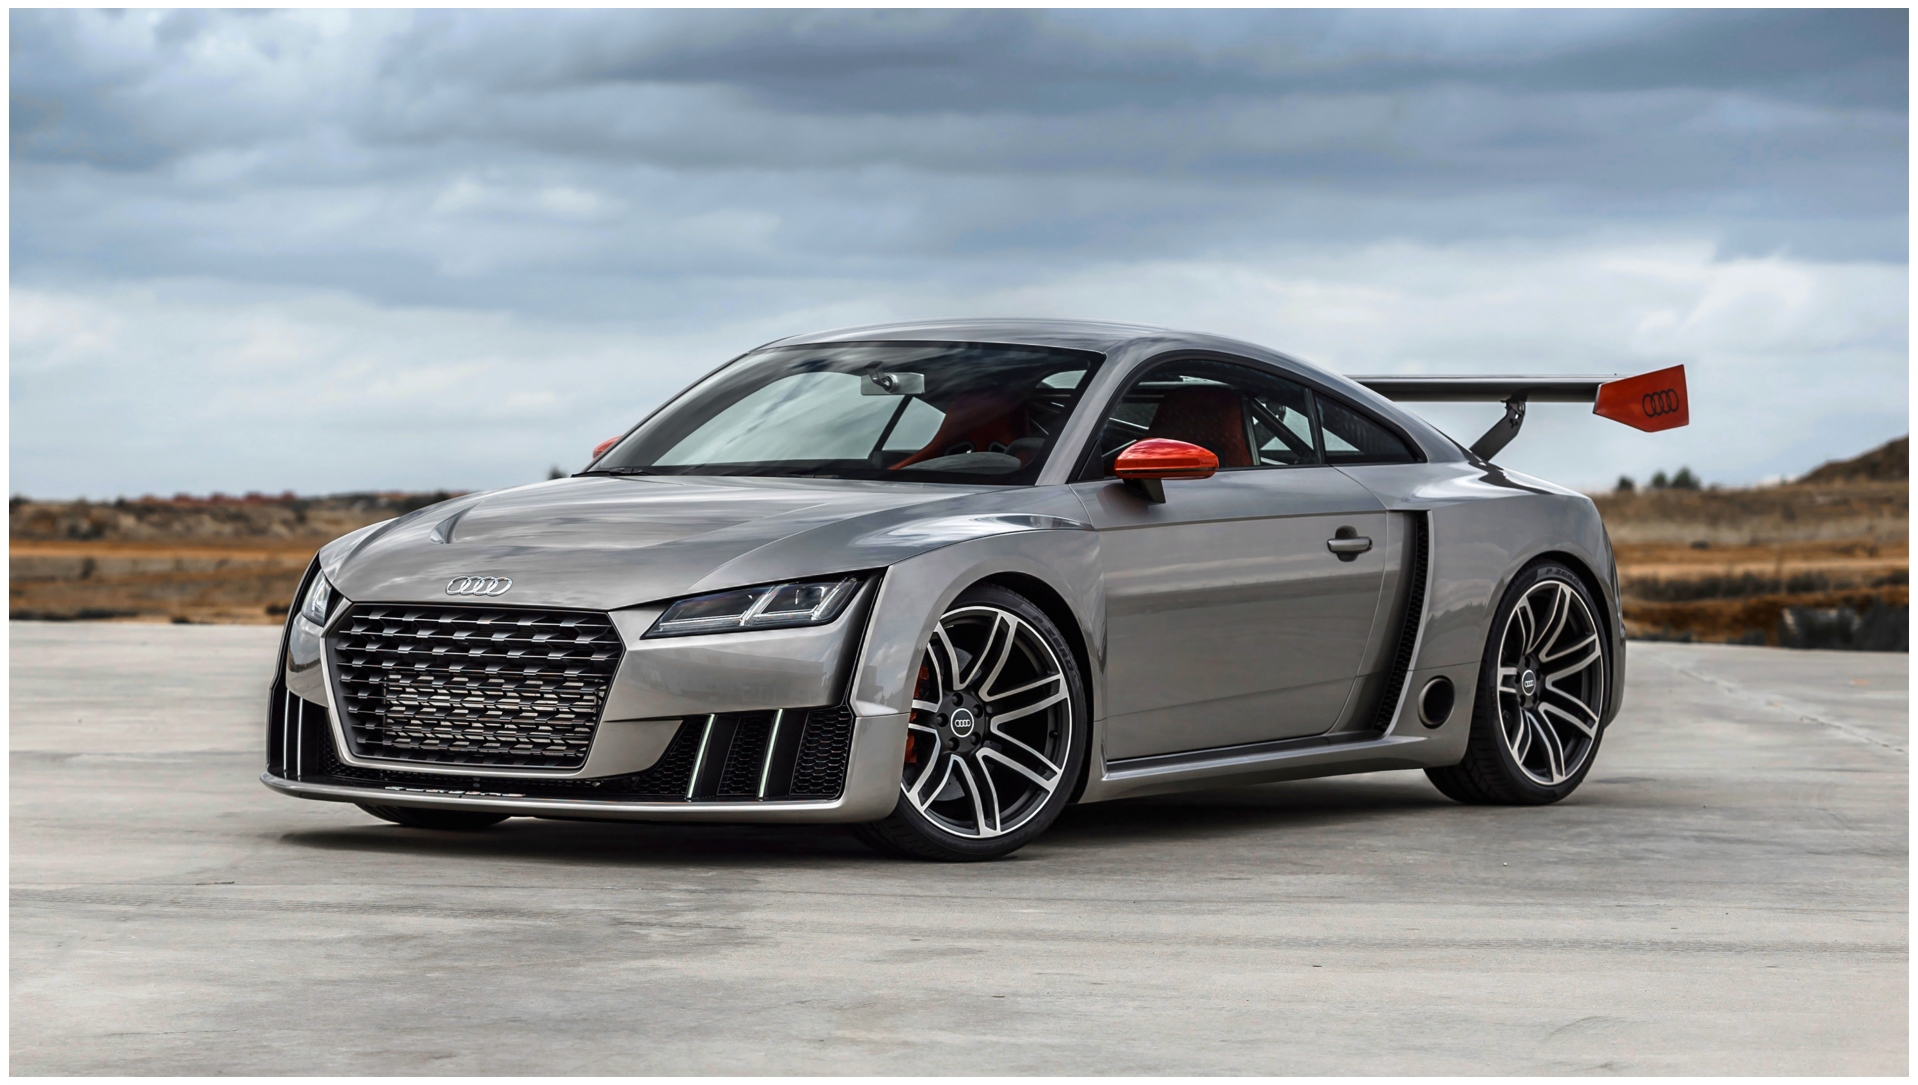 New Audi Cars 2016 HD Wallpapers | HD Walls